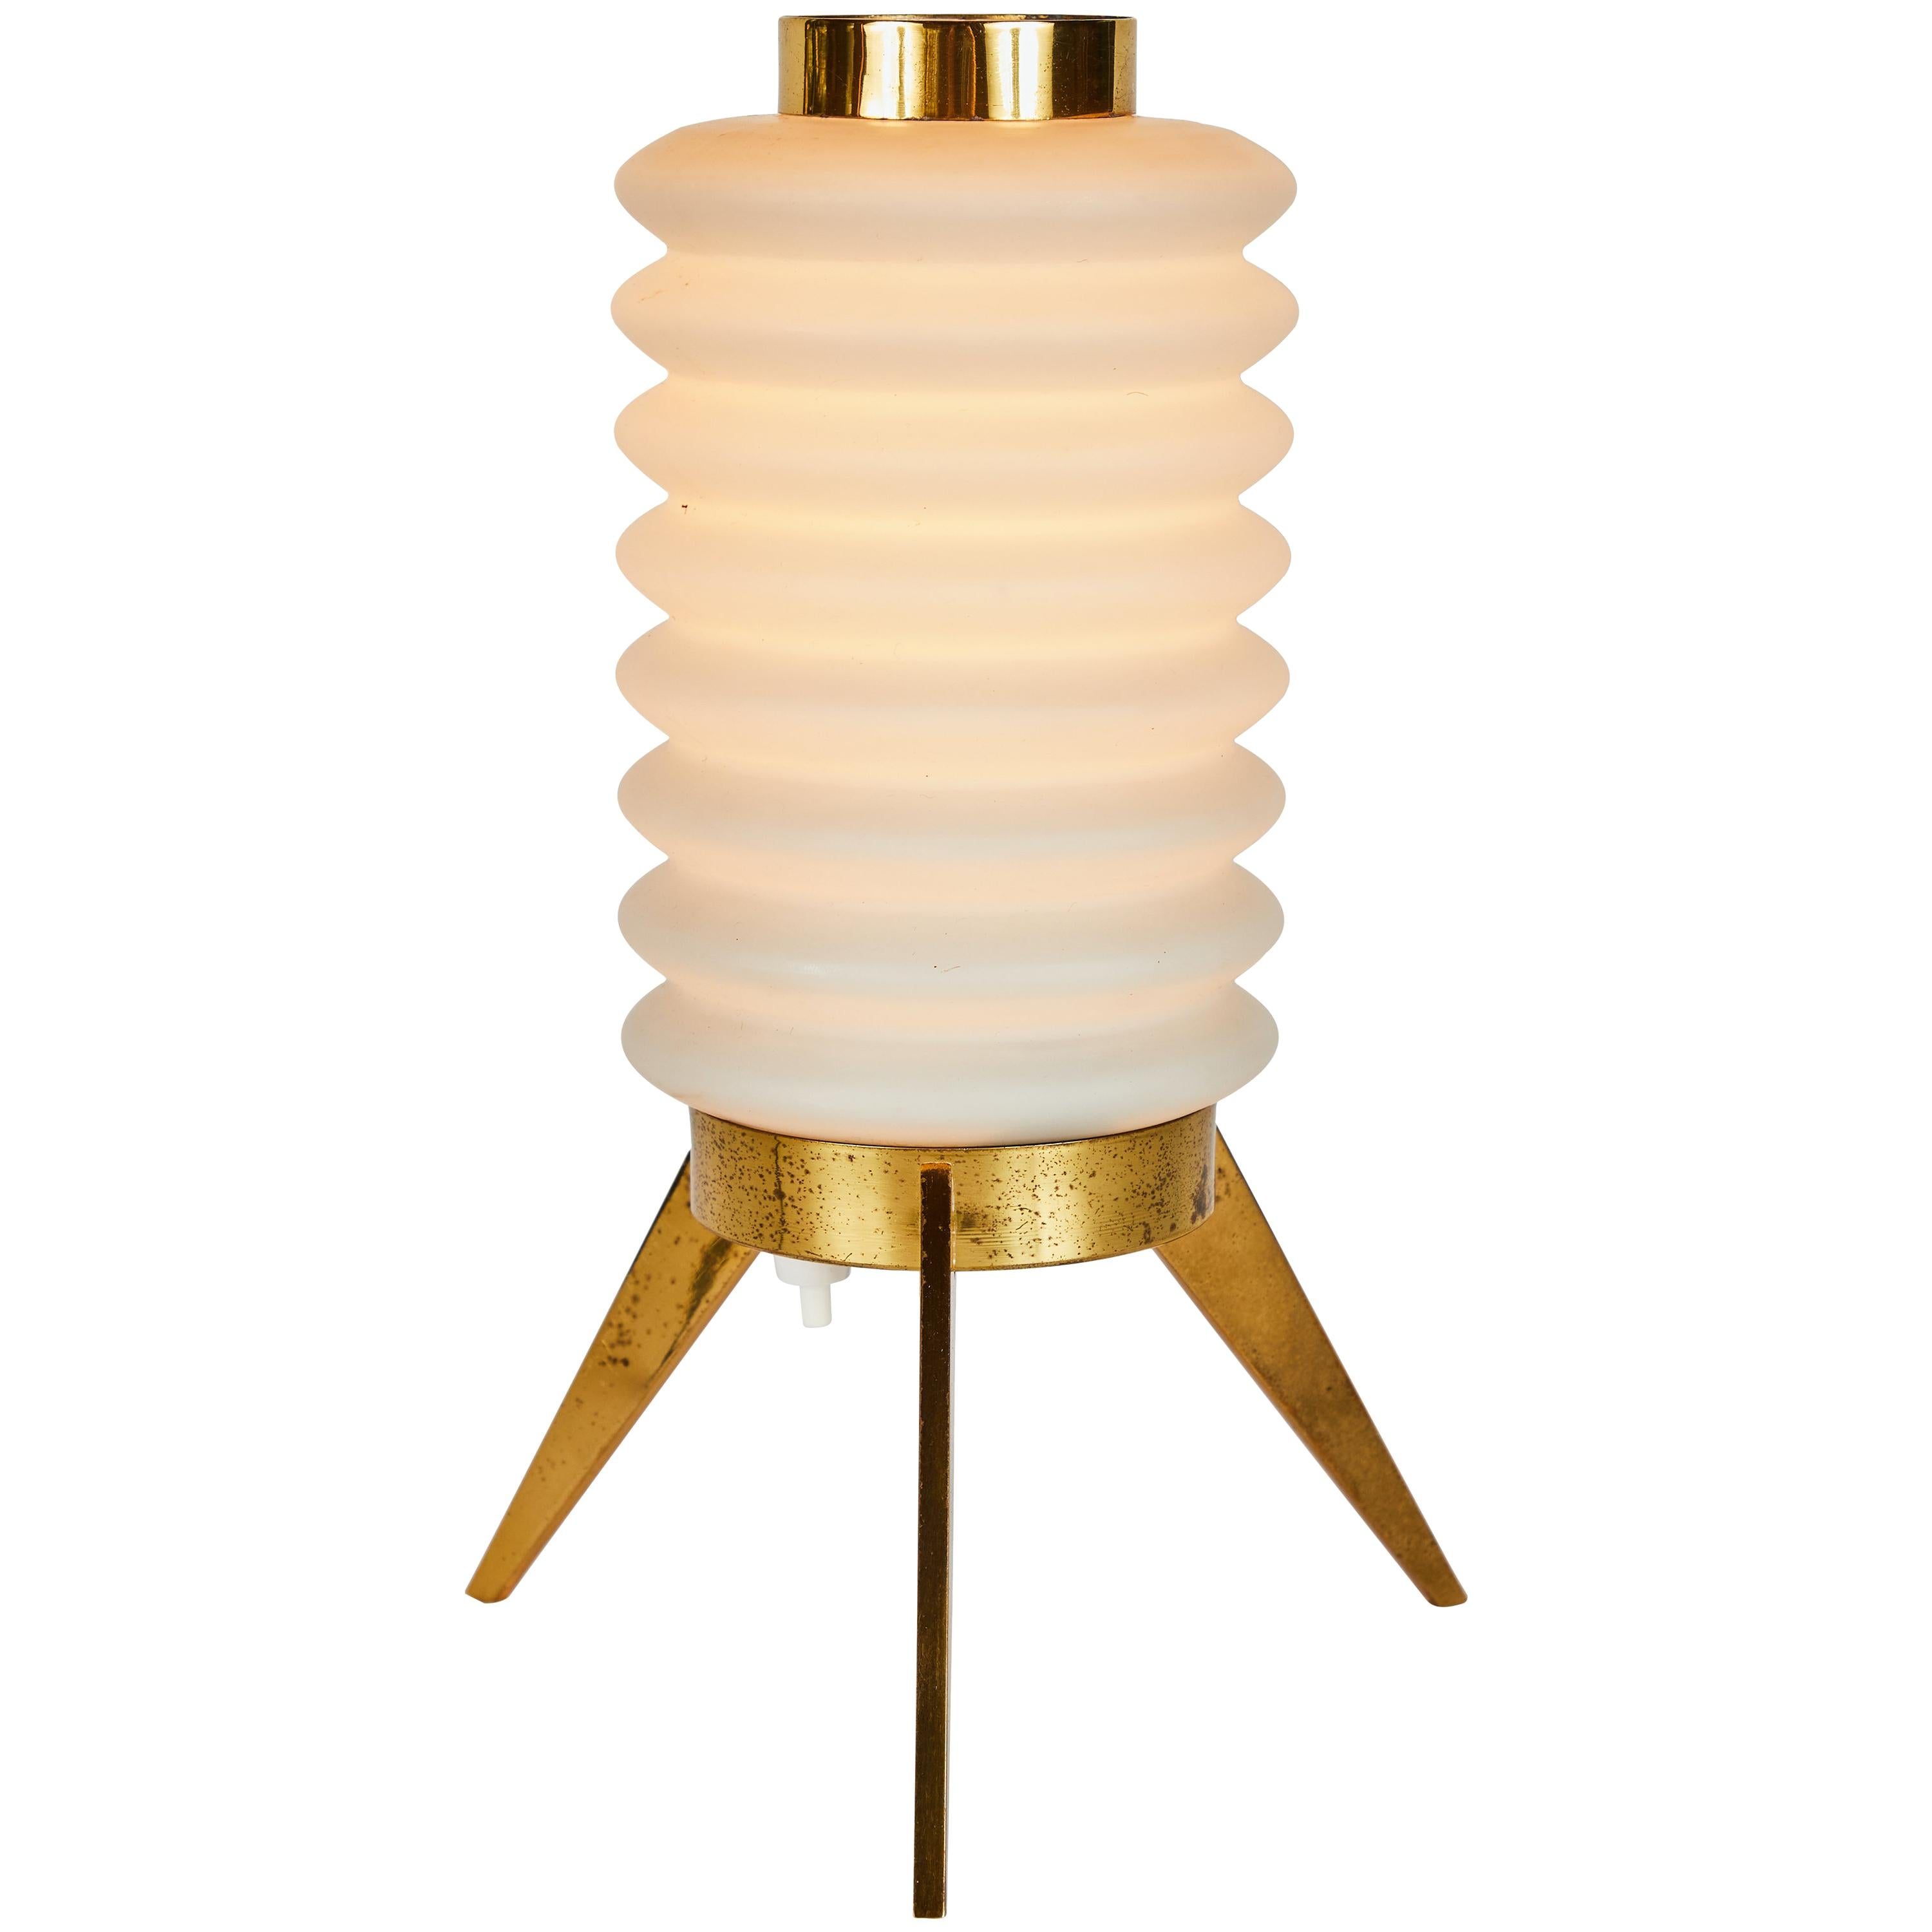 Rare 1950s Angelo Lelli Glass and Brass Tripod Table Lamp for Arredoluce